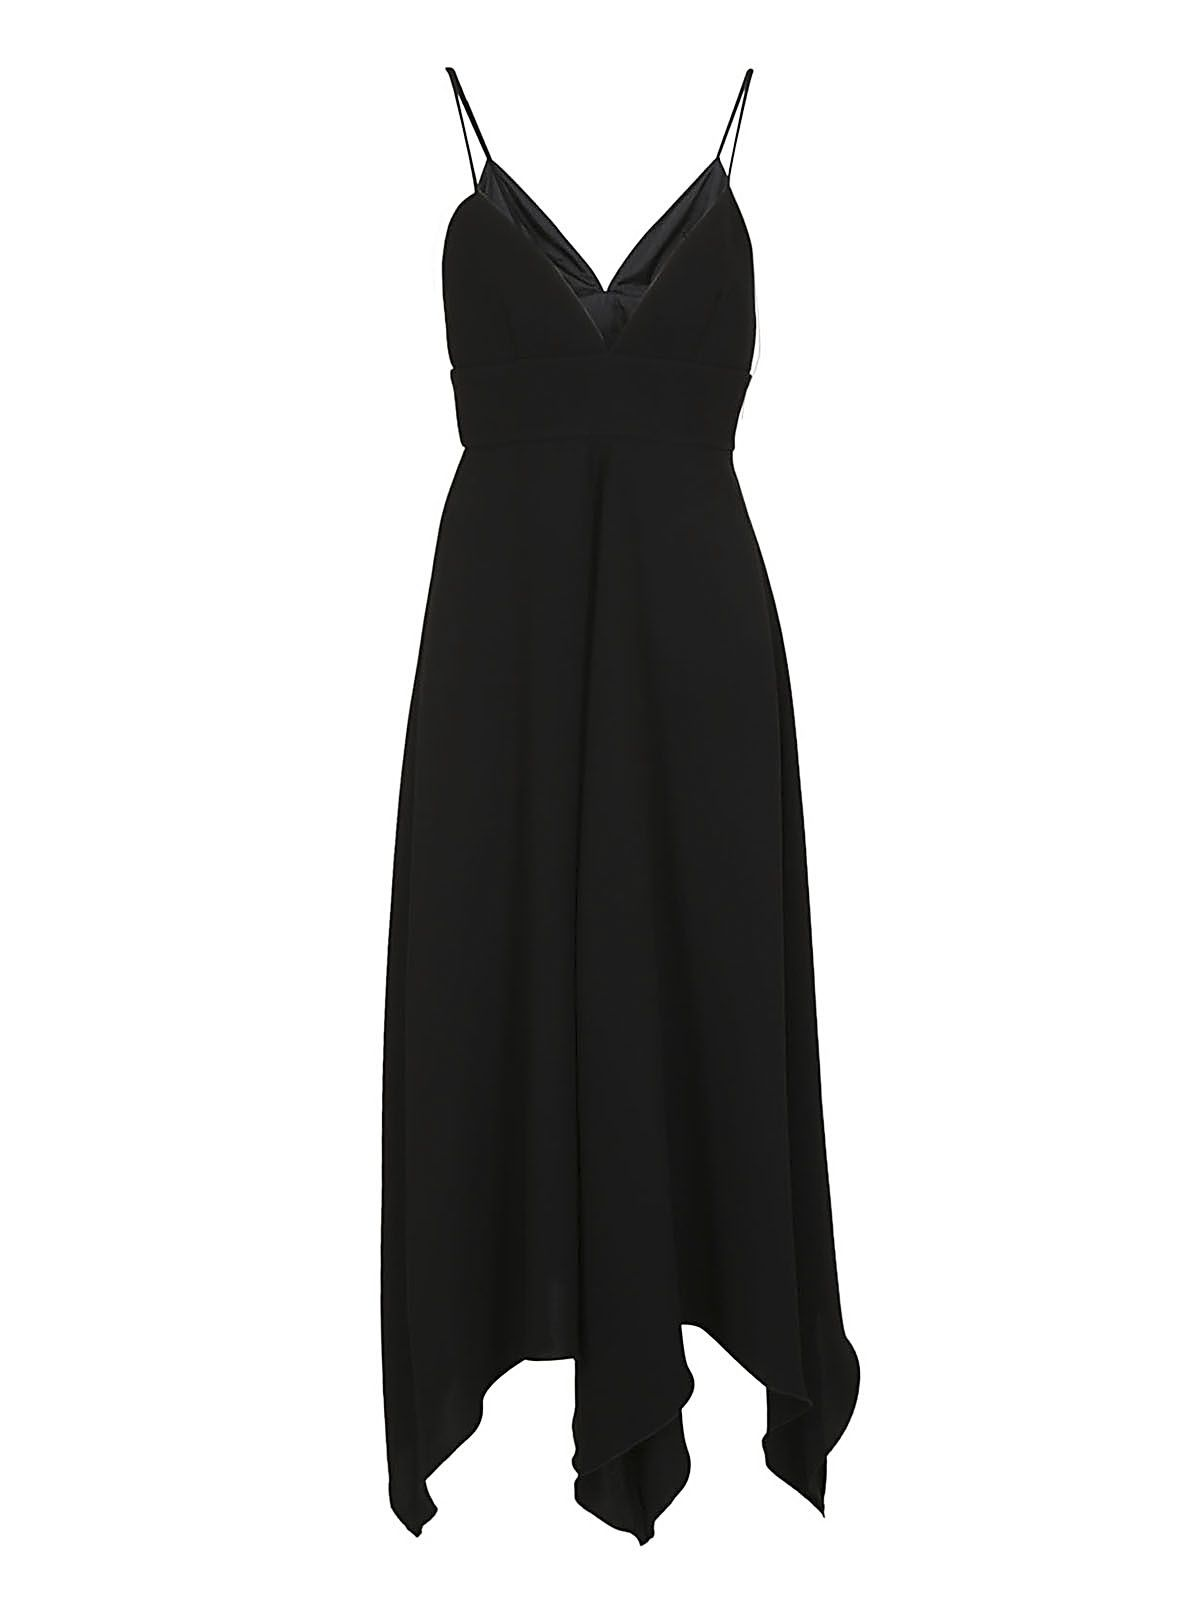 Boutique Moschino Classic Dress